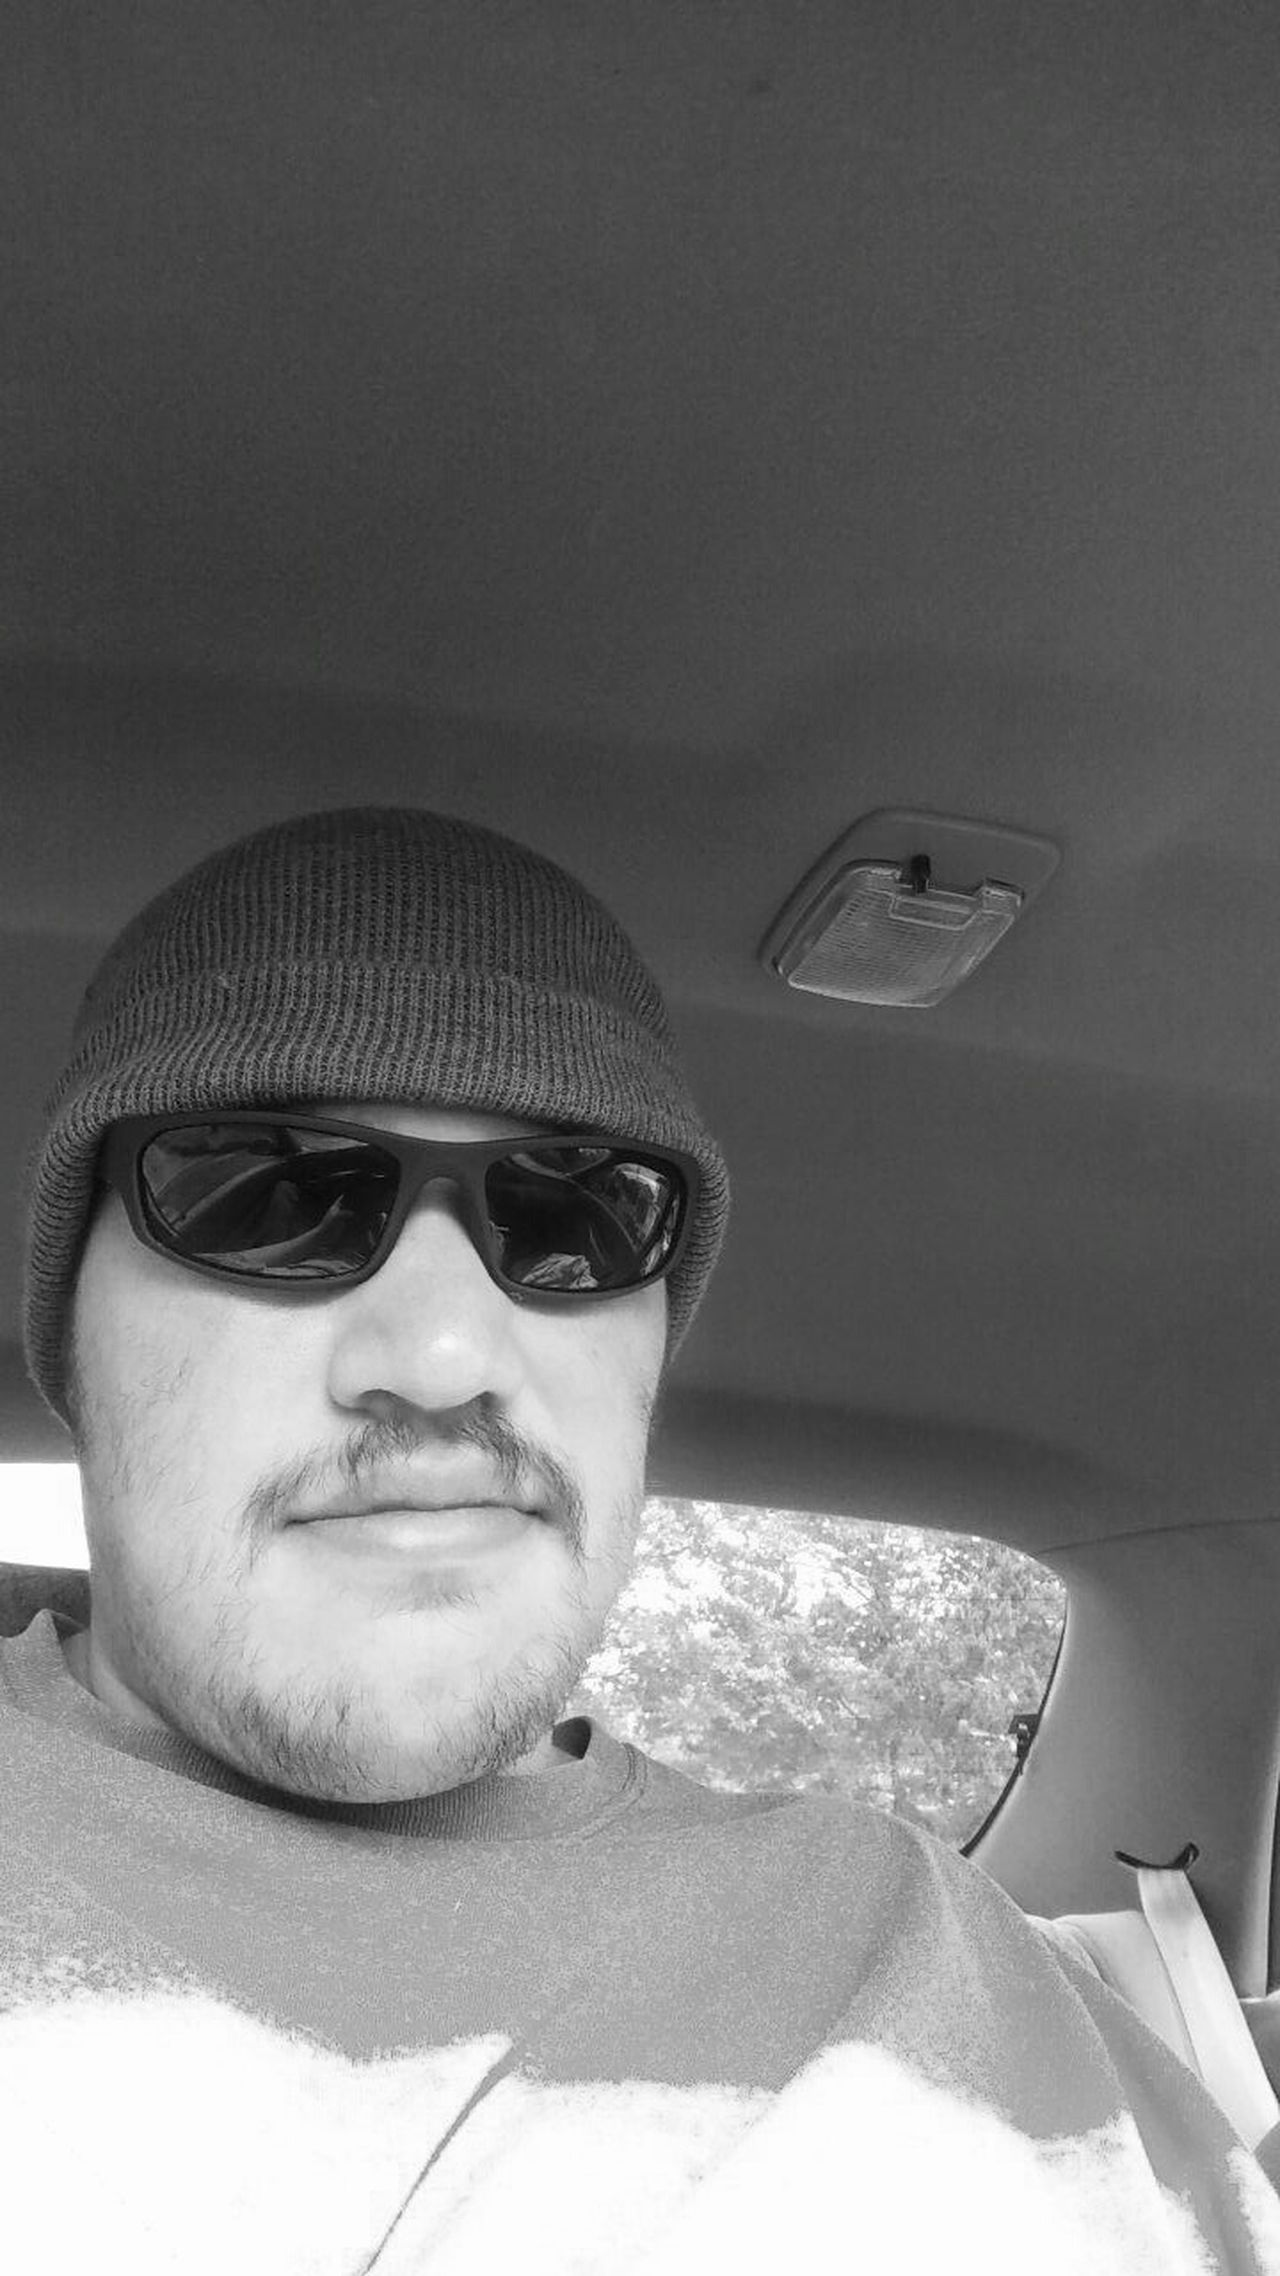 Selfienation Blackandwhite Photography I Need A Shave Sunglasses That's Me Happyme Taking Photos Blackandwhite Taking Photos